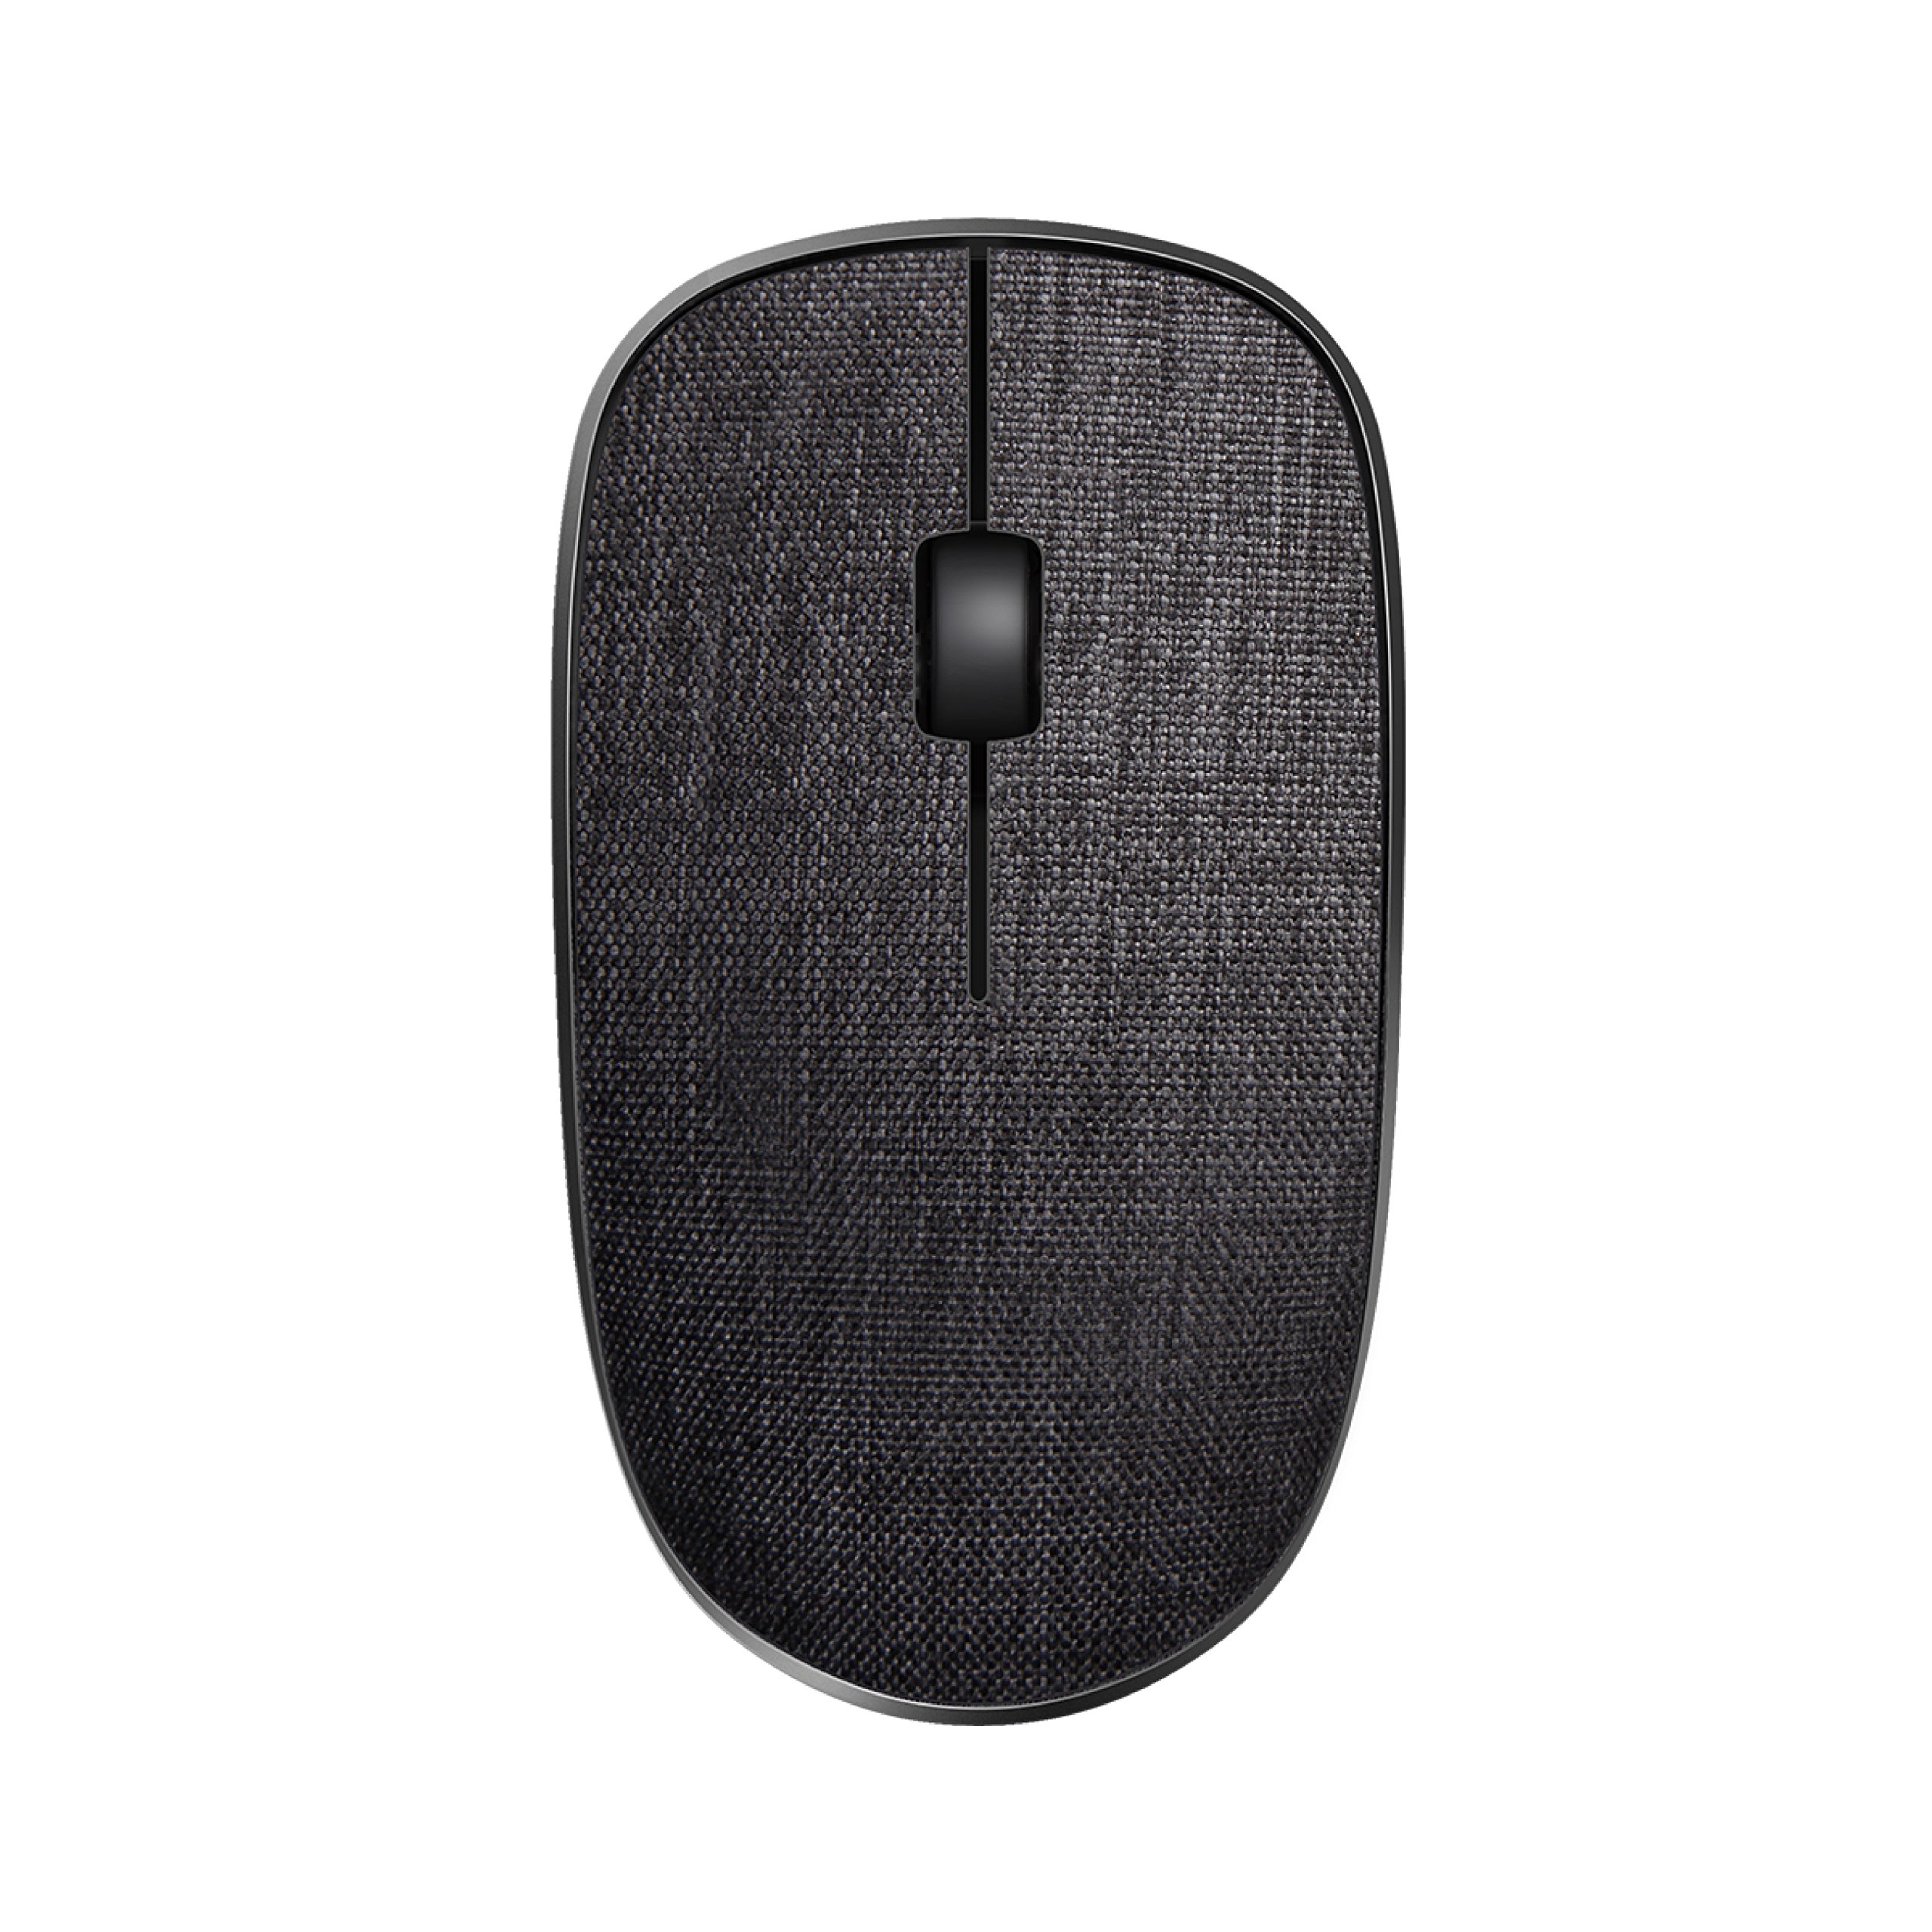 Rapoo Wireless Mouse Portable Fabric Cover Mouse 3510P for Notebook/PC/Laptop and Computer - BLACK